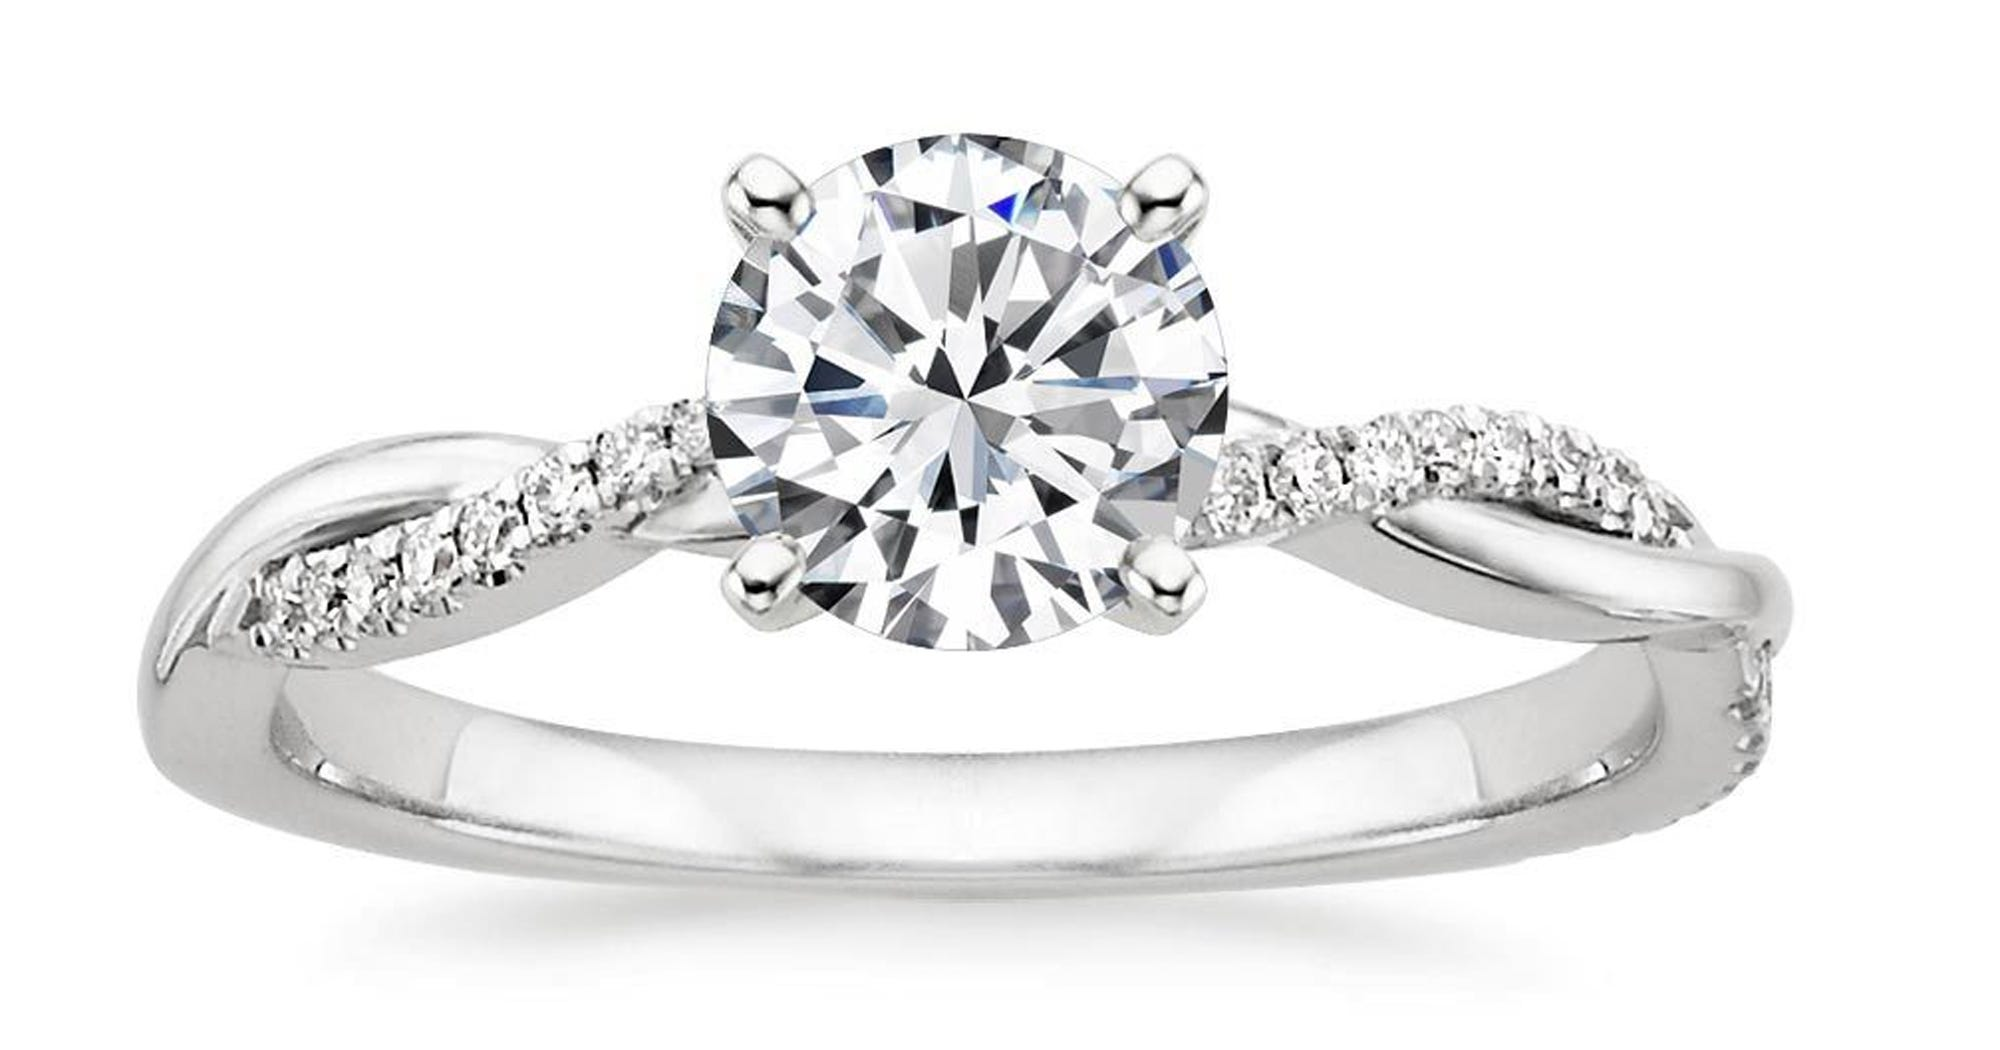 image shopping are trends engagement wedding for in people ring how rings jewelry detailed